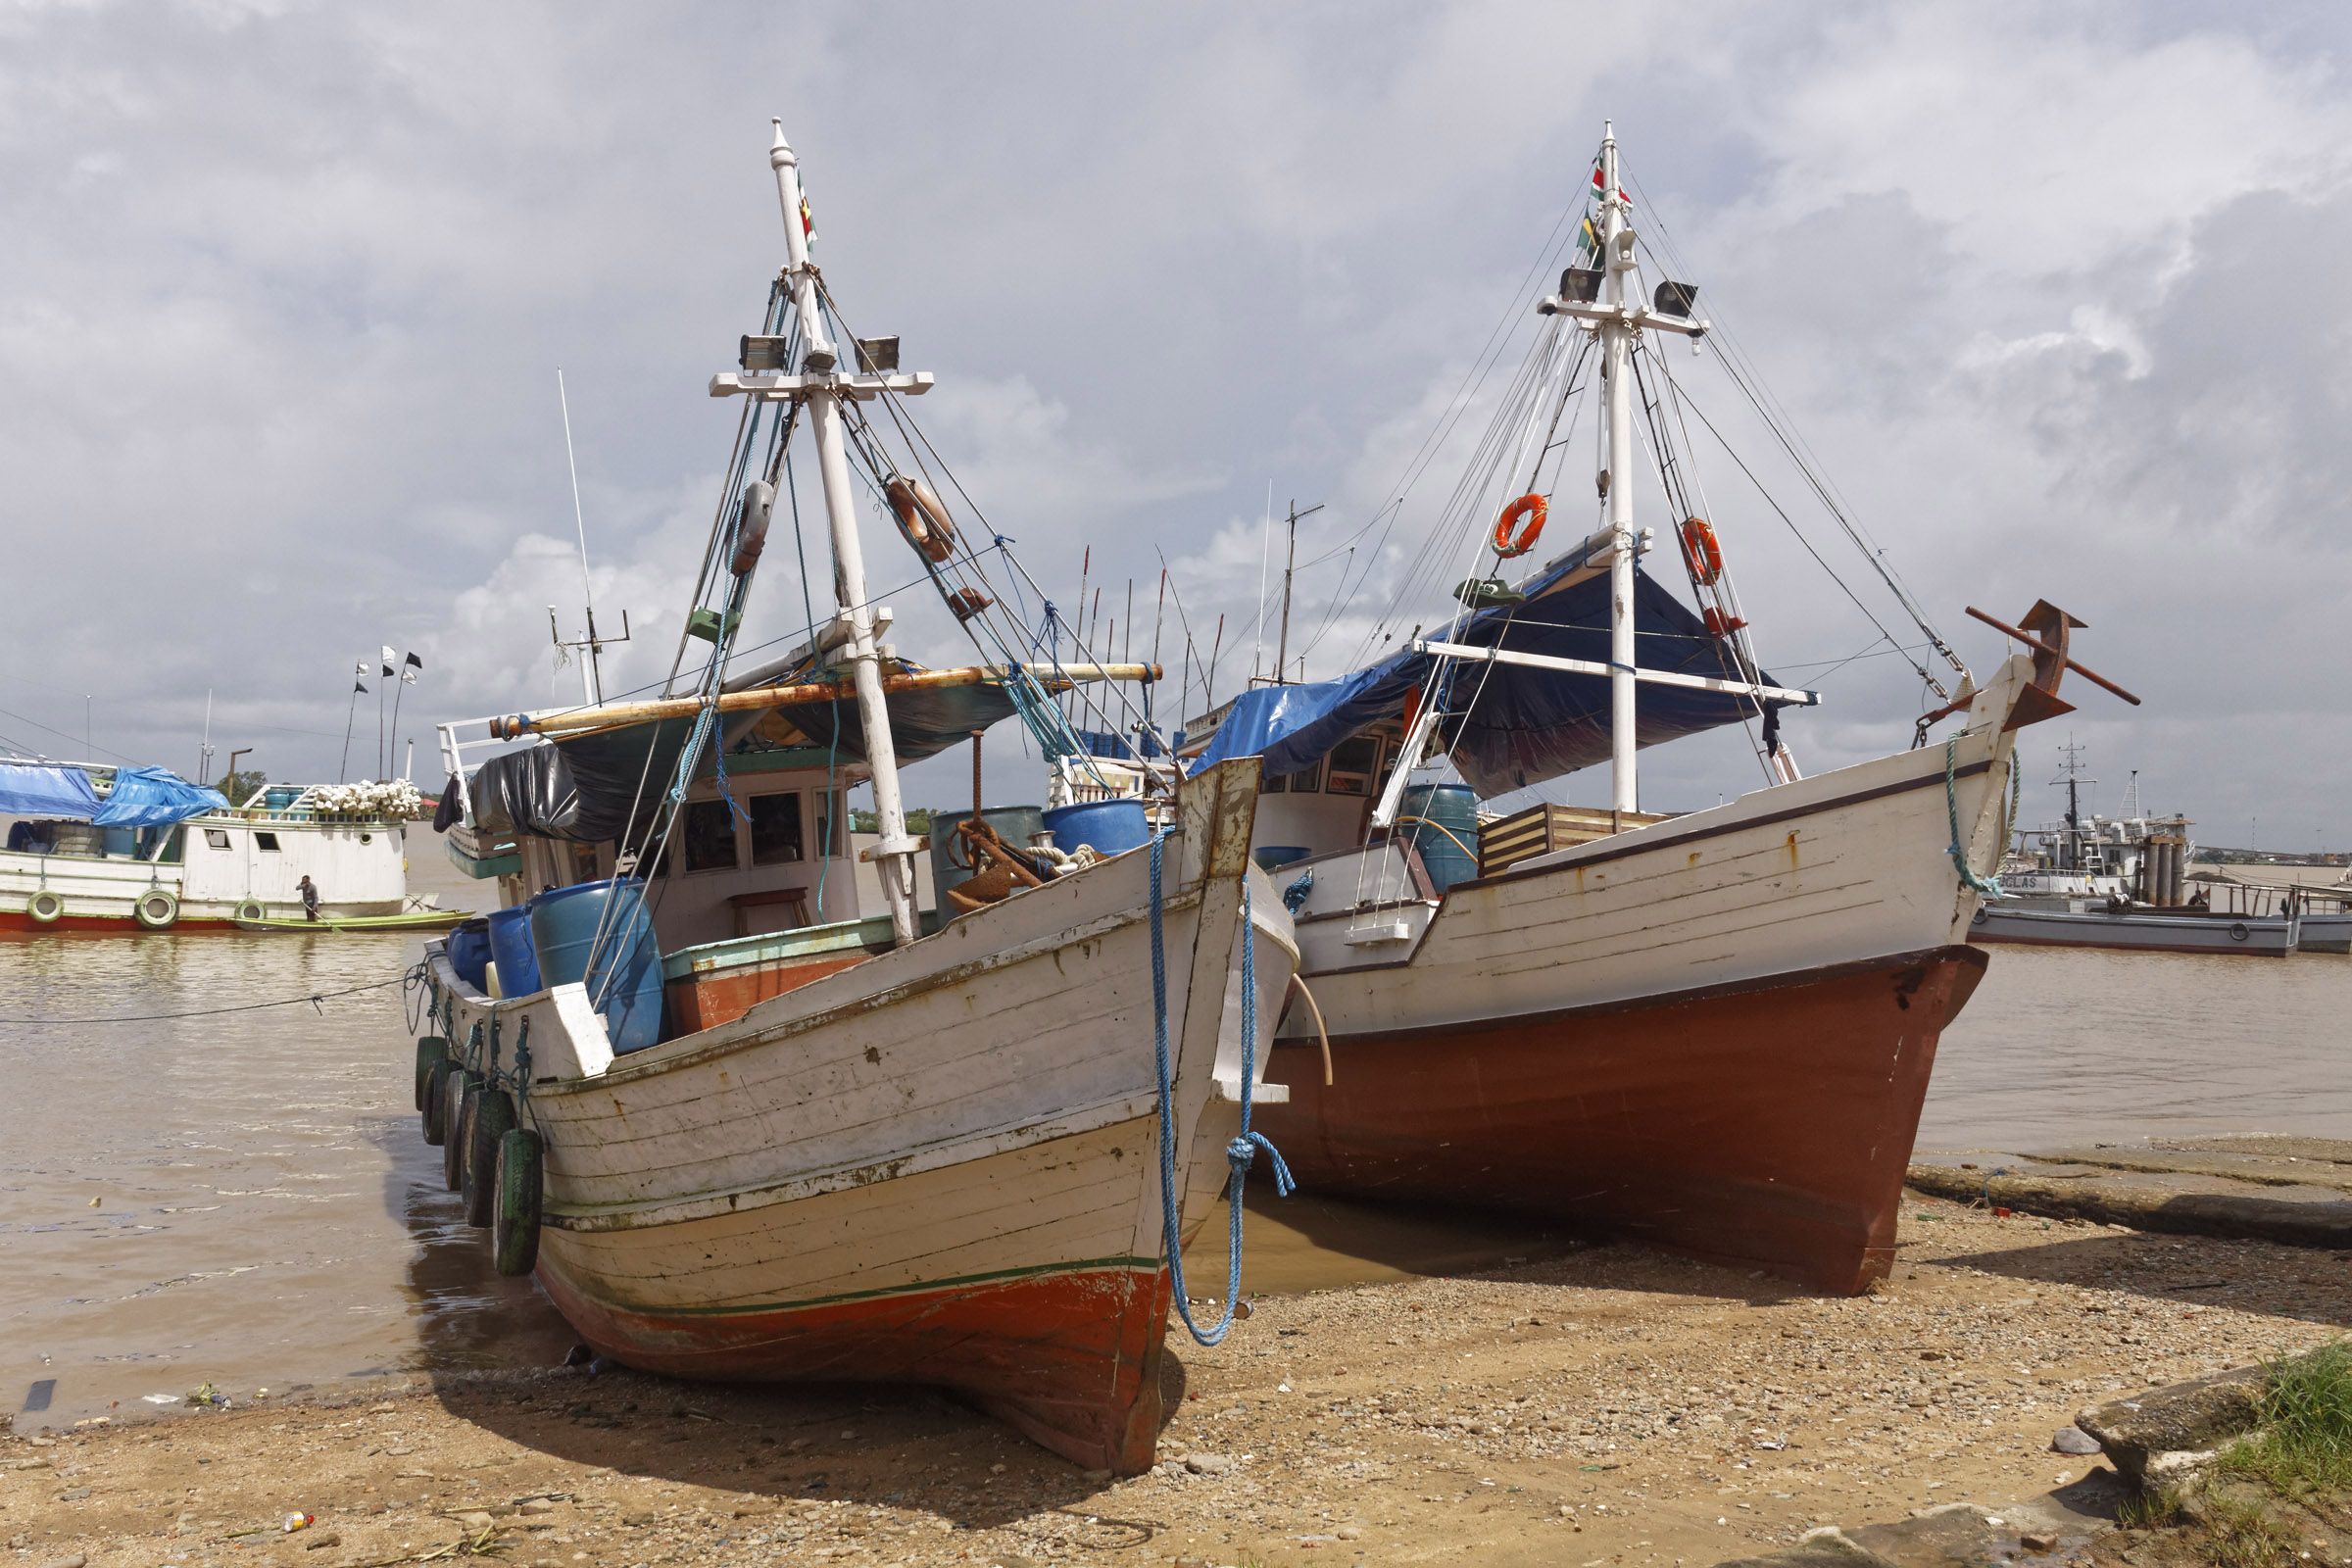 Fishing boats, Adventure, Nets, Vessel, Tropical, HQ Photo